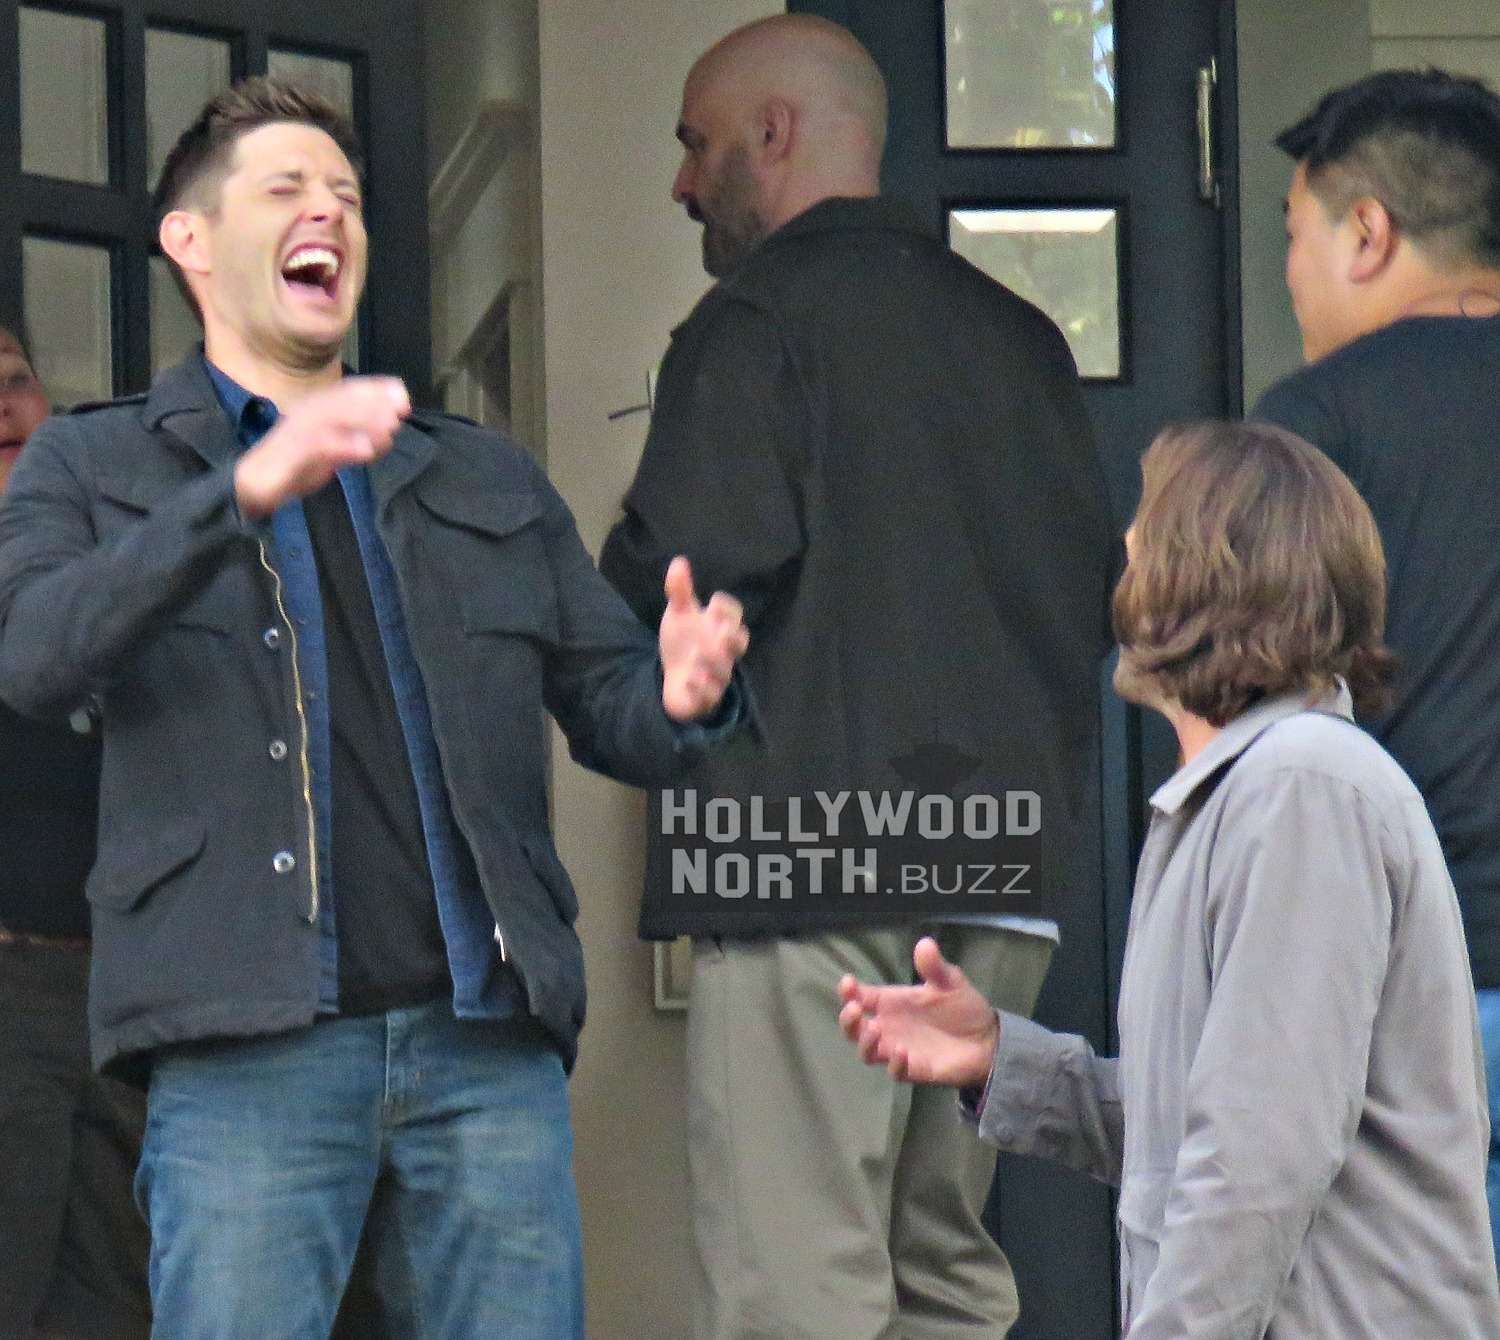 https://i2.wp.com/yvrshoots.com/wp-content/uploads/2017/08/a-spn-set-2.jpg